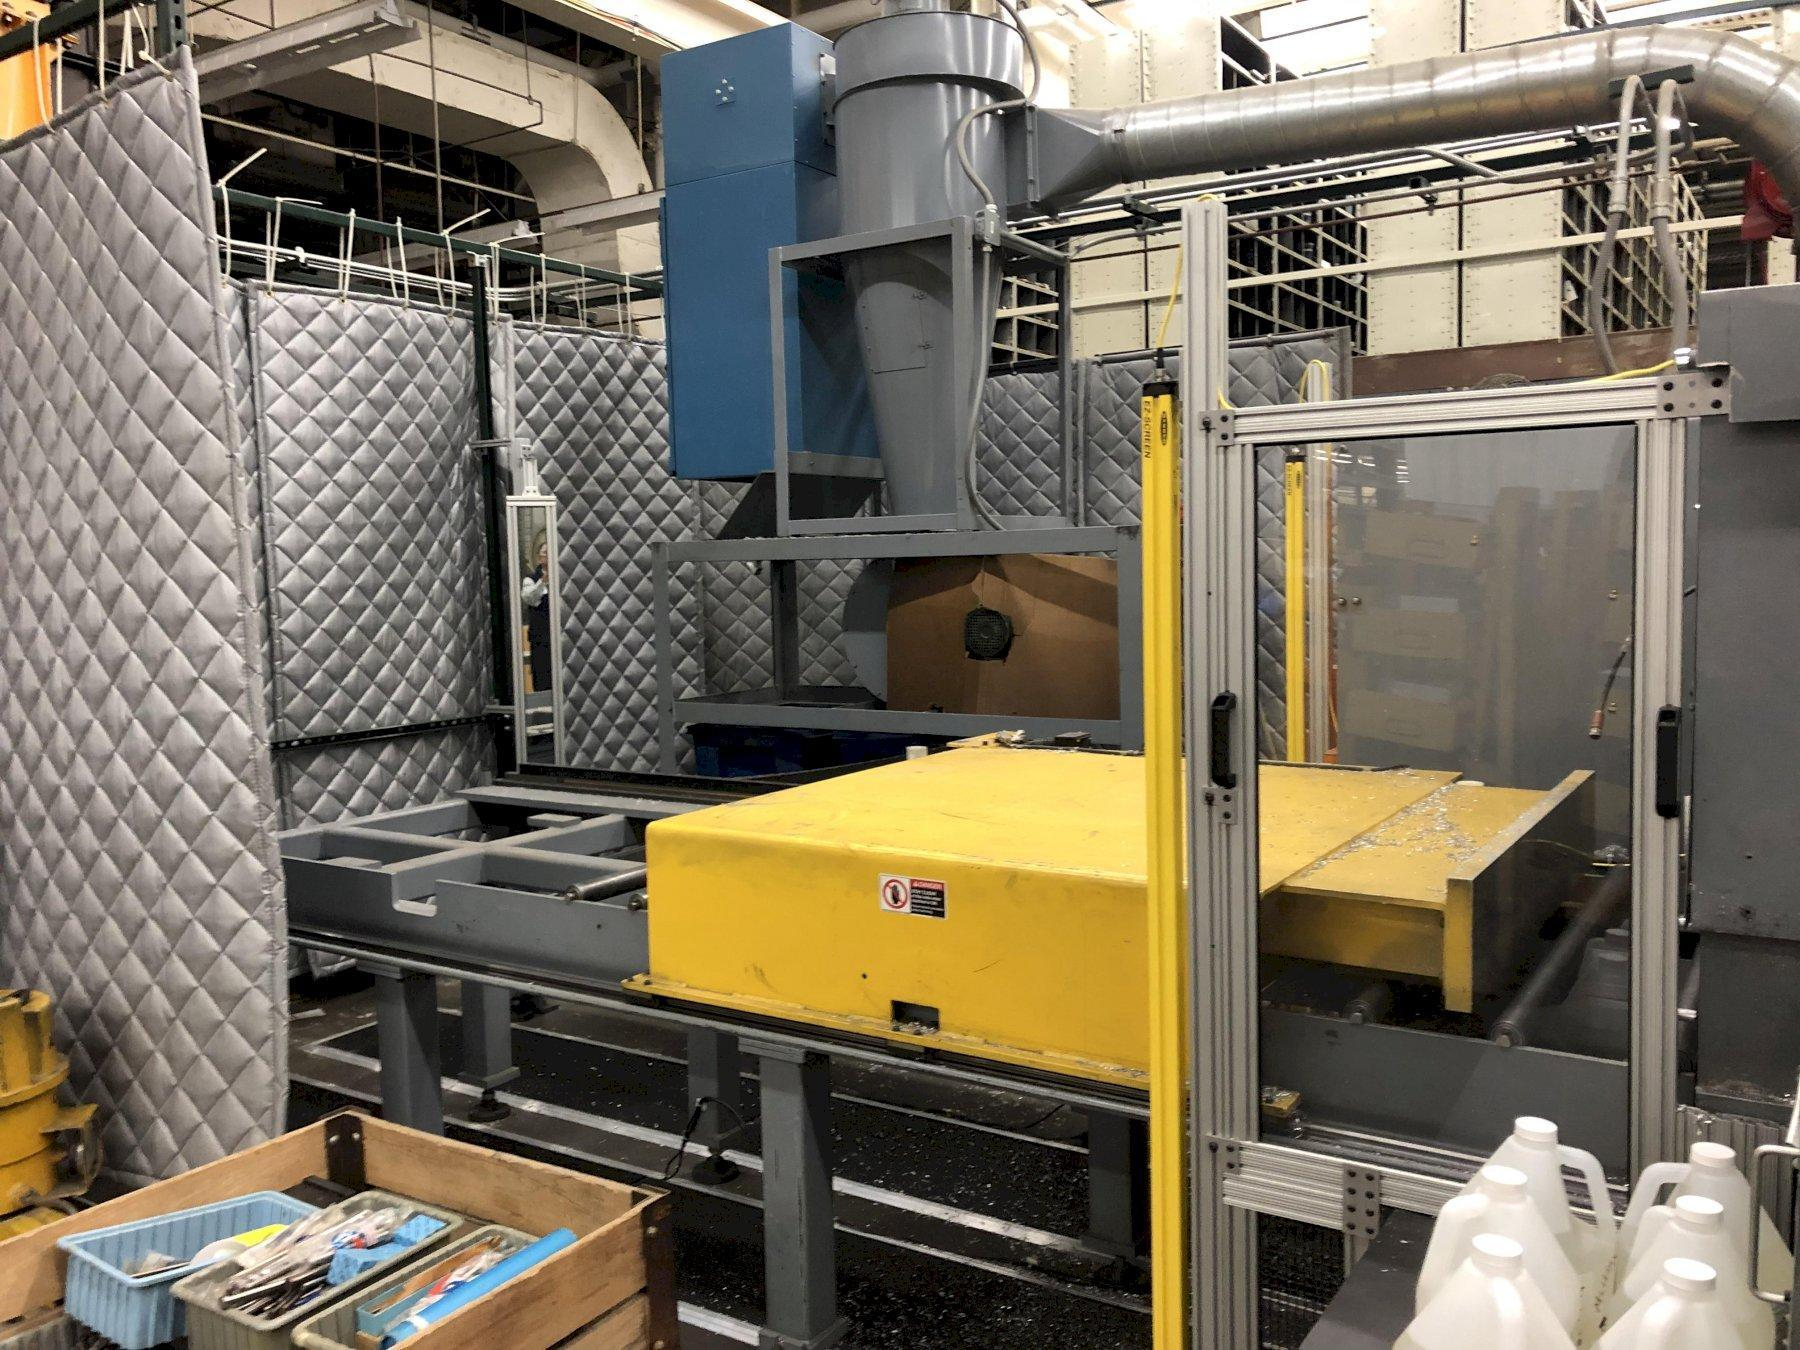 USED METLSAW MODEL CS-4 FULLY AUTOMATIC PROGRAMMABLE NON FERROUS SAW, STOCK# 10656, YEAR 2000